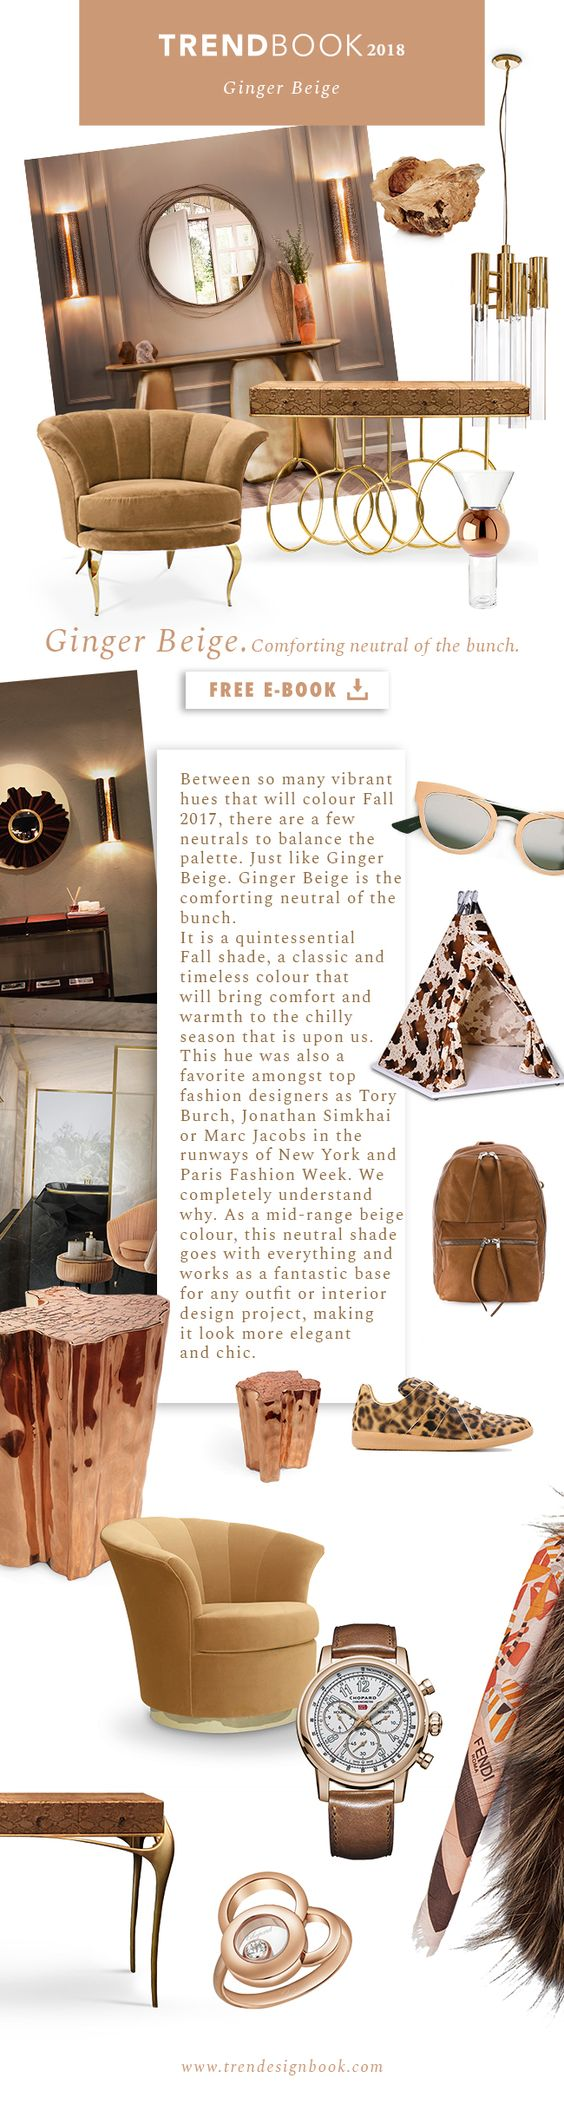 Color trends Fall/Winter 2017/18 Ginger Beige